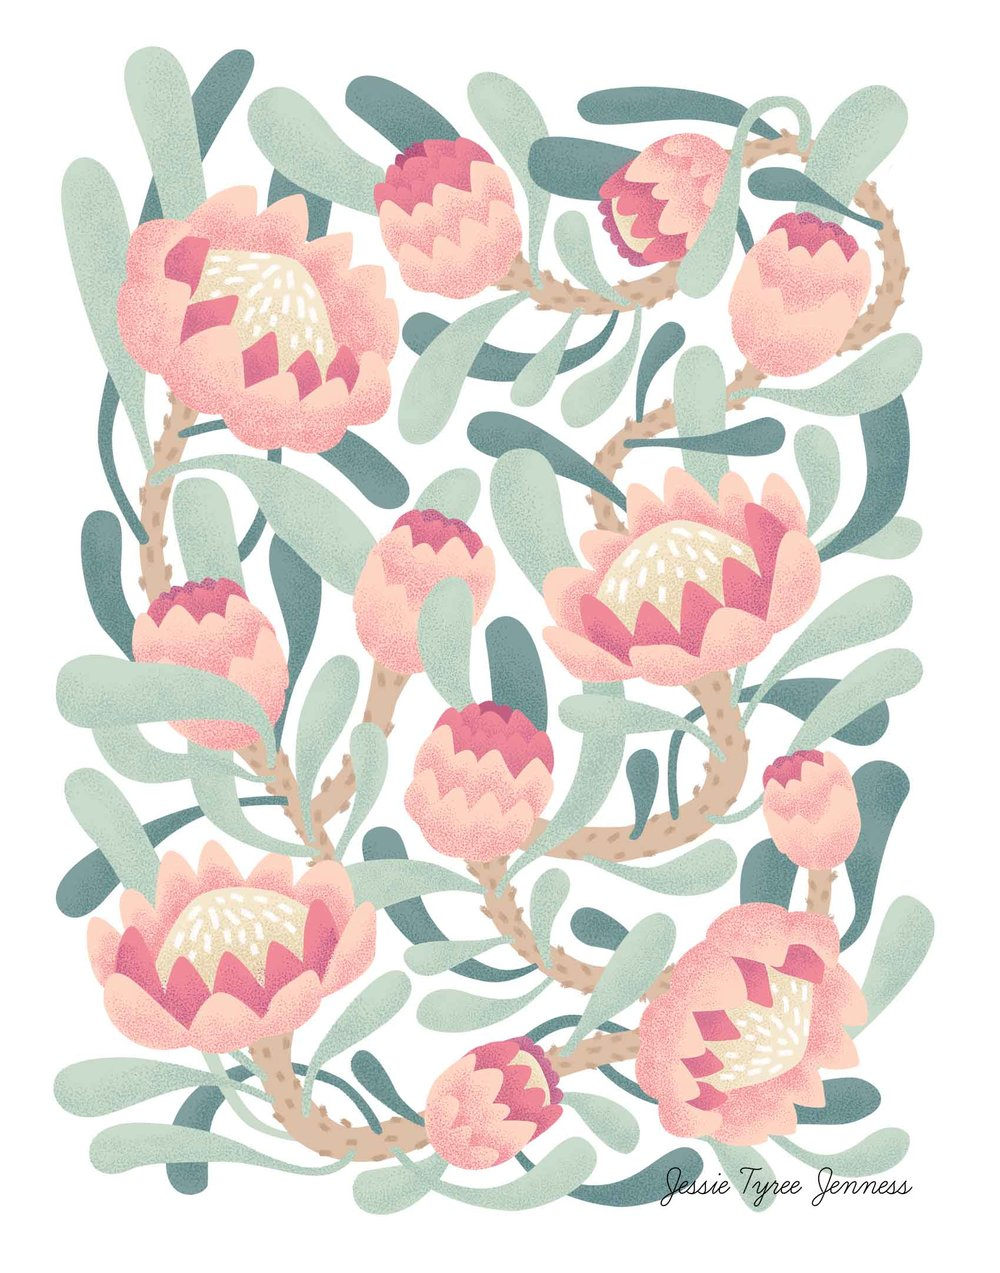 Pink Protea Illustration by Jessie Tyree Jenness